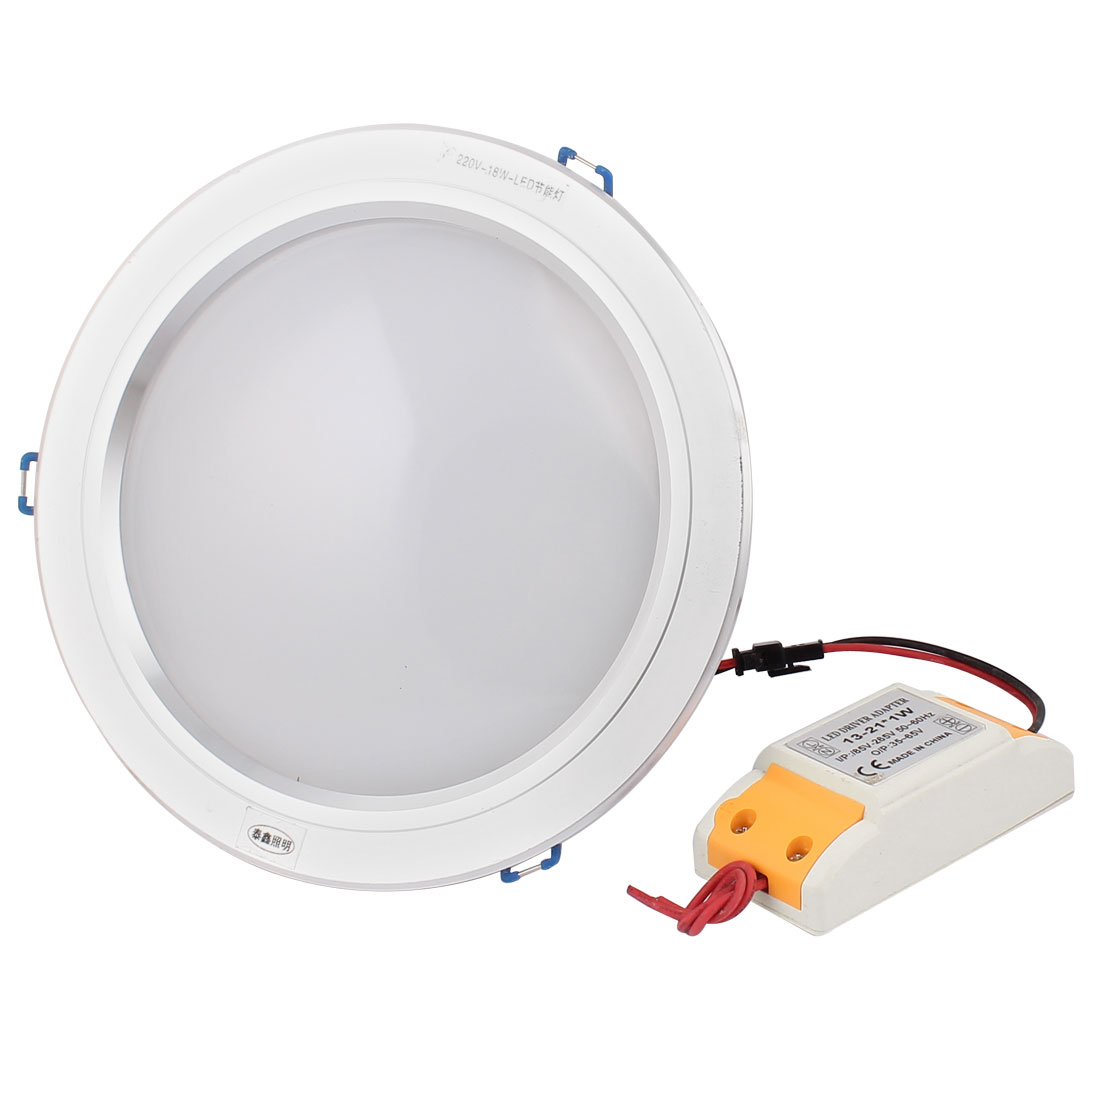 AC 220-240V 18W White Wall Mount LED Lighting Energy-saving Lamp